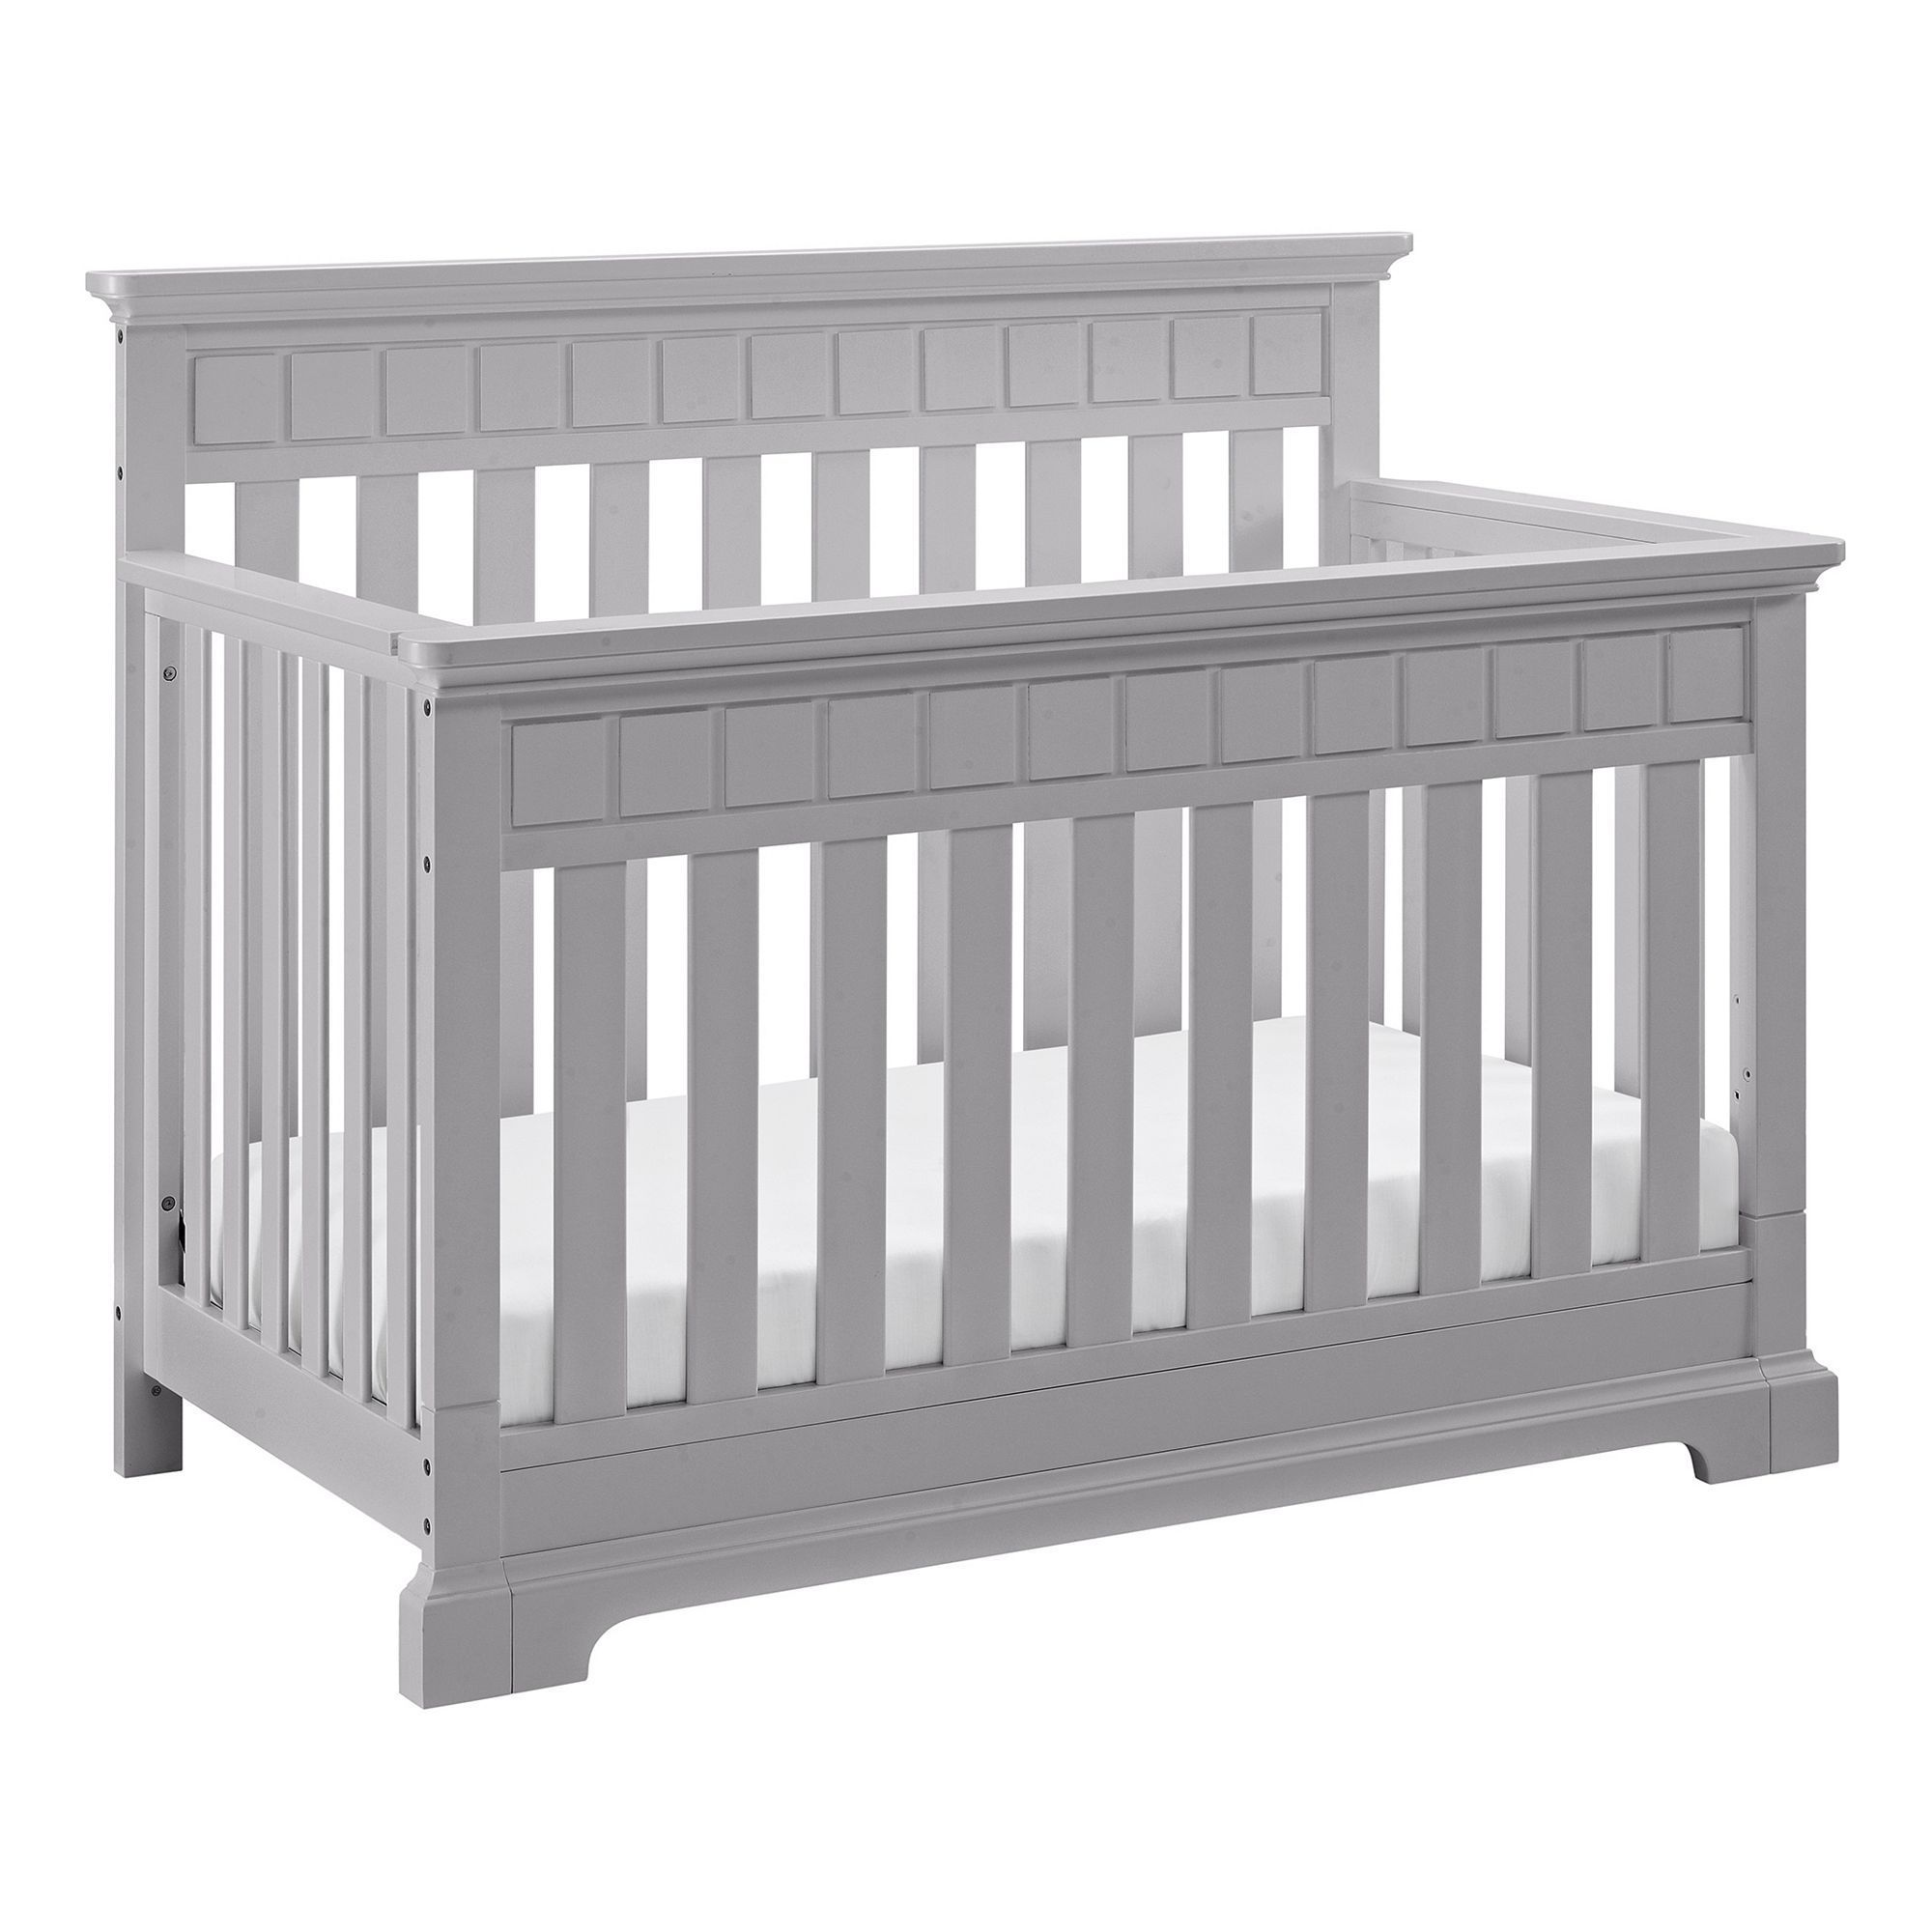 Thomasville Kids Willow 4 In 1 Convertible Crib, Grey